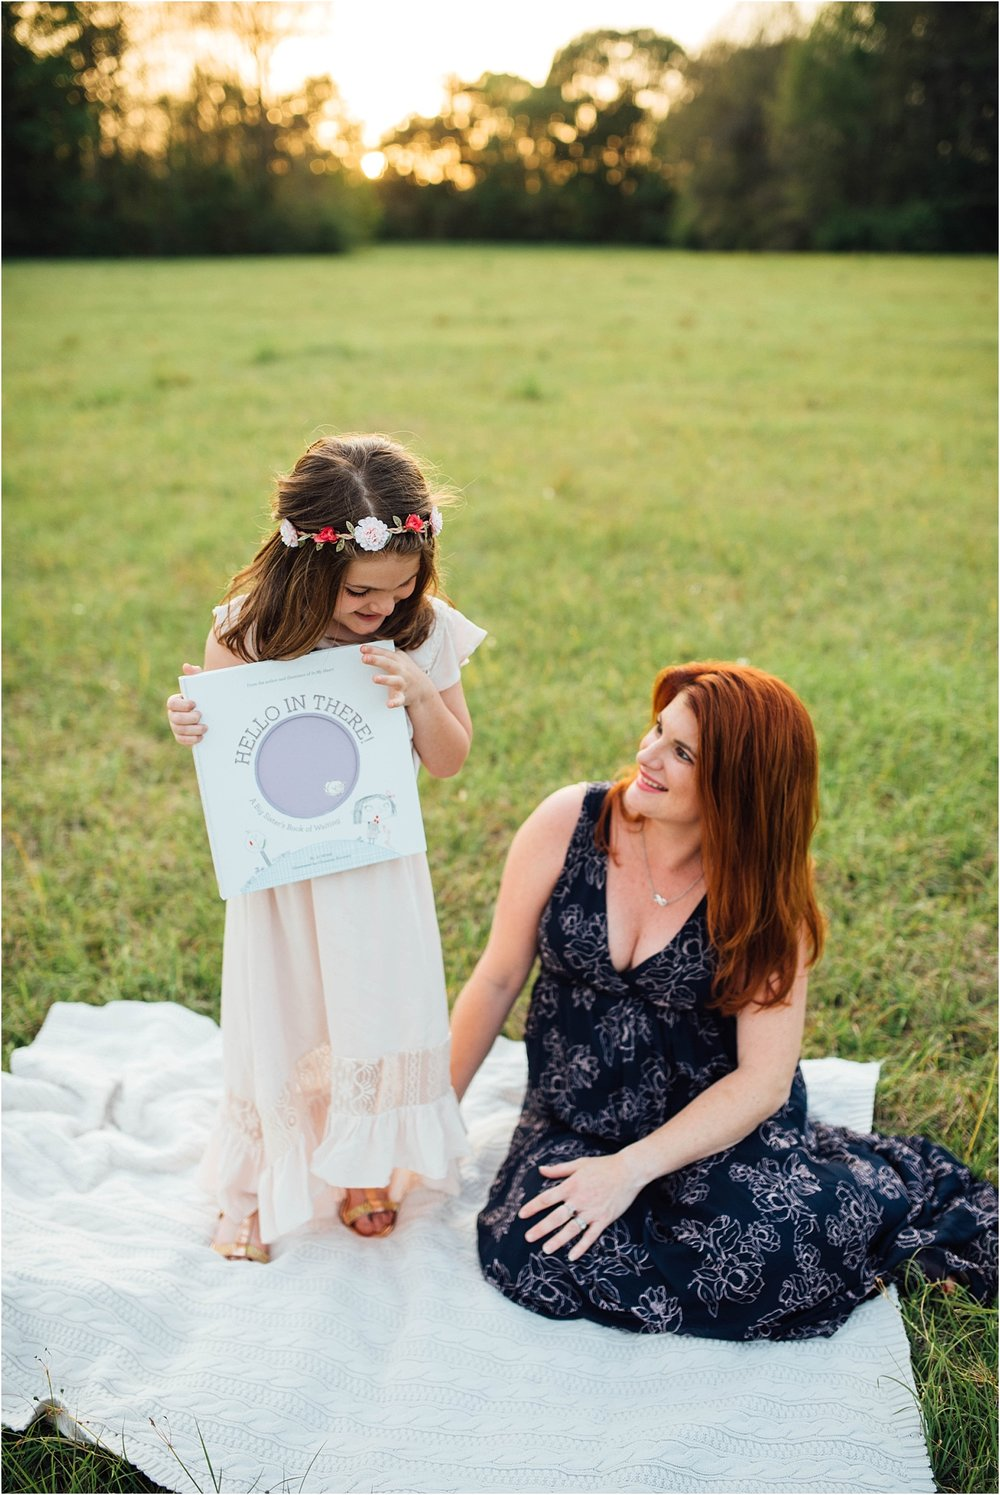 Sarah + Charlotte-Mommy-and-Me-Amite-River-Maternity-Photos_Gabby Chapin_Print_0120_BLOG.jpg